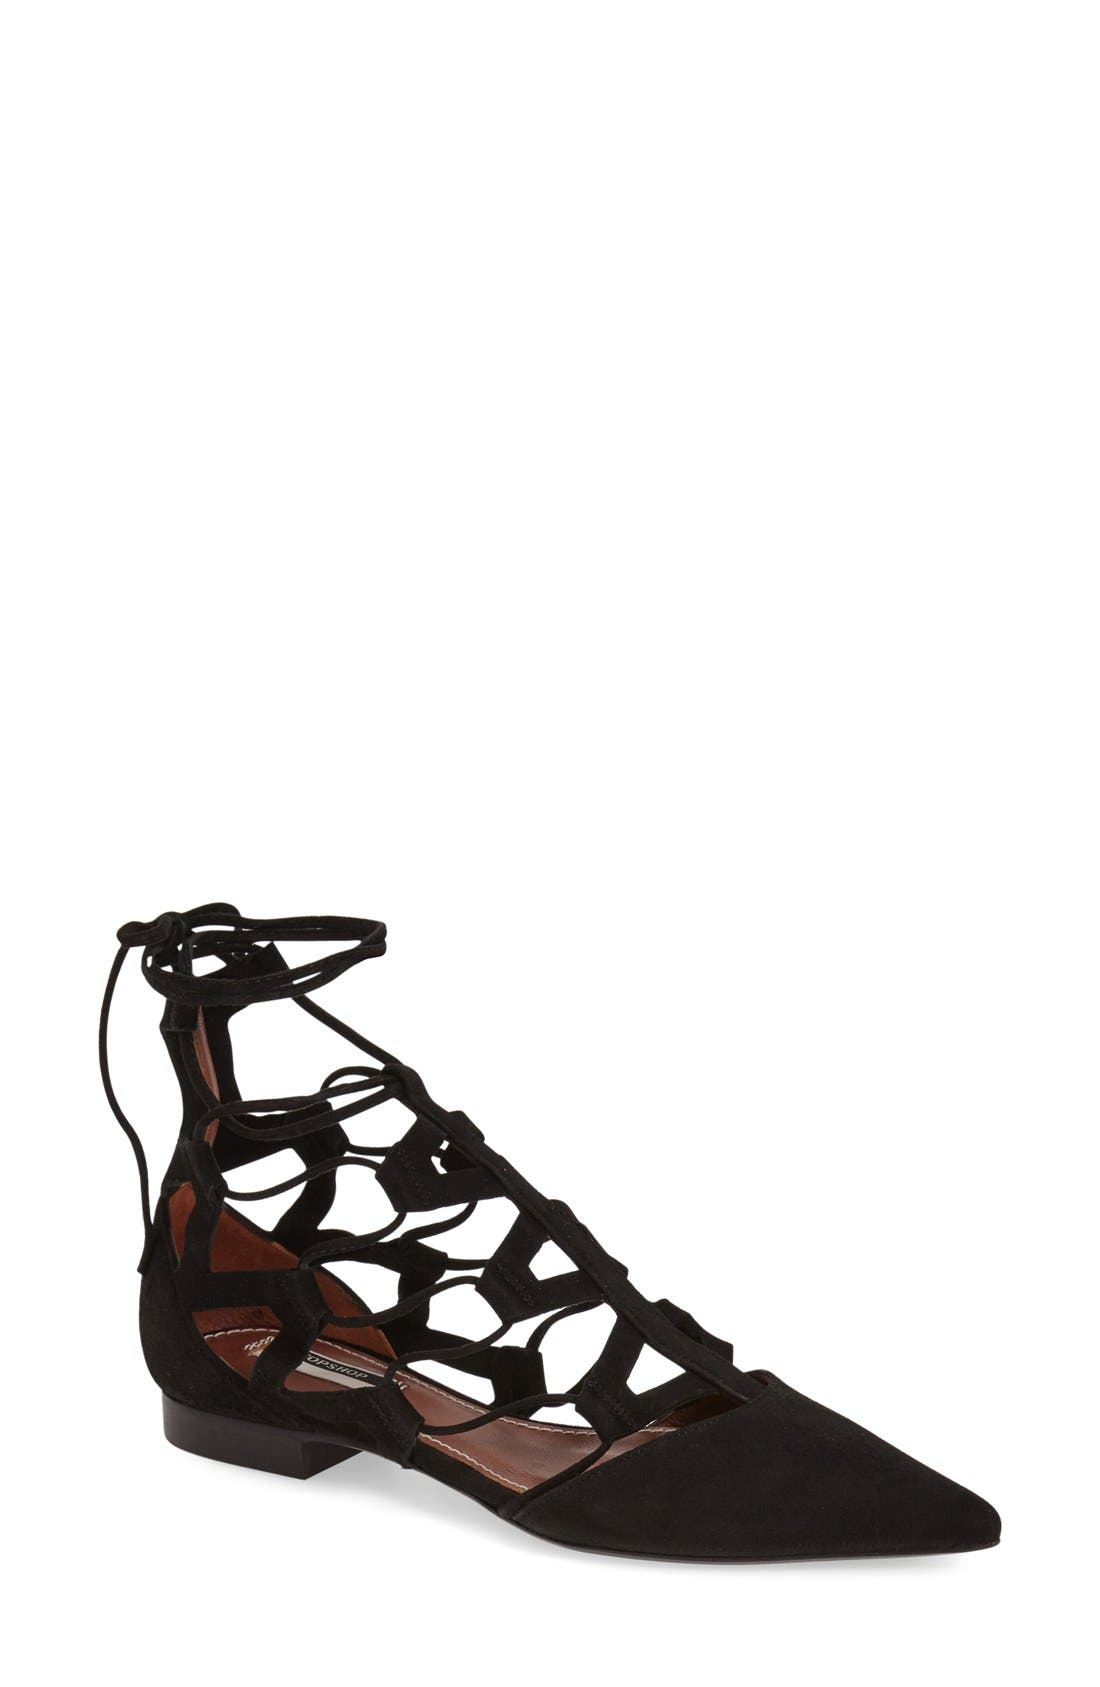 Alternate Image 1 Selected - Topshop 'Posy' Pointy Toe Ghillie Flat (Women)